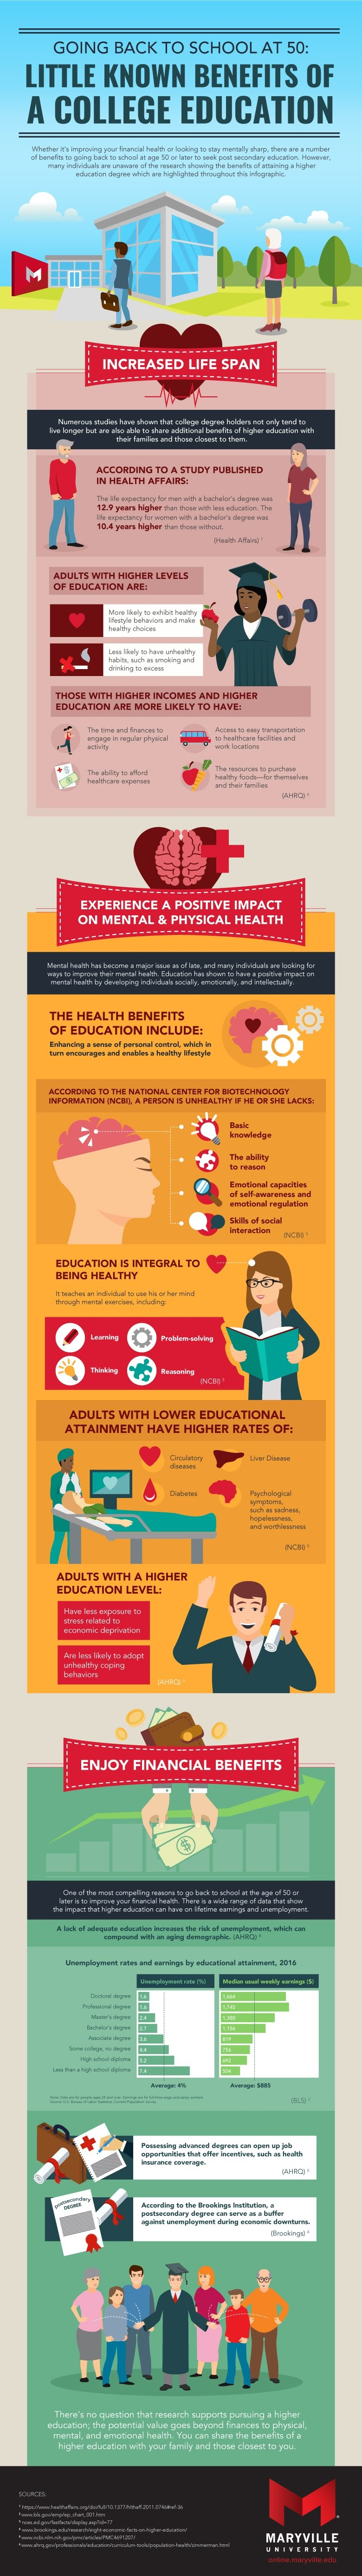 Going Back to School at 50: Little Known Benefits of a College Education #infographic